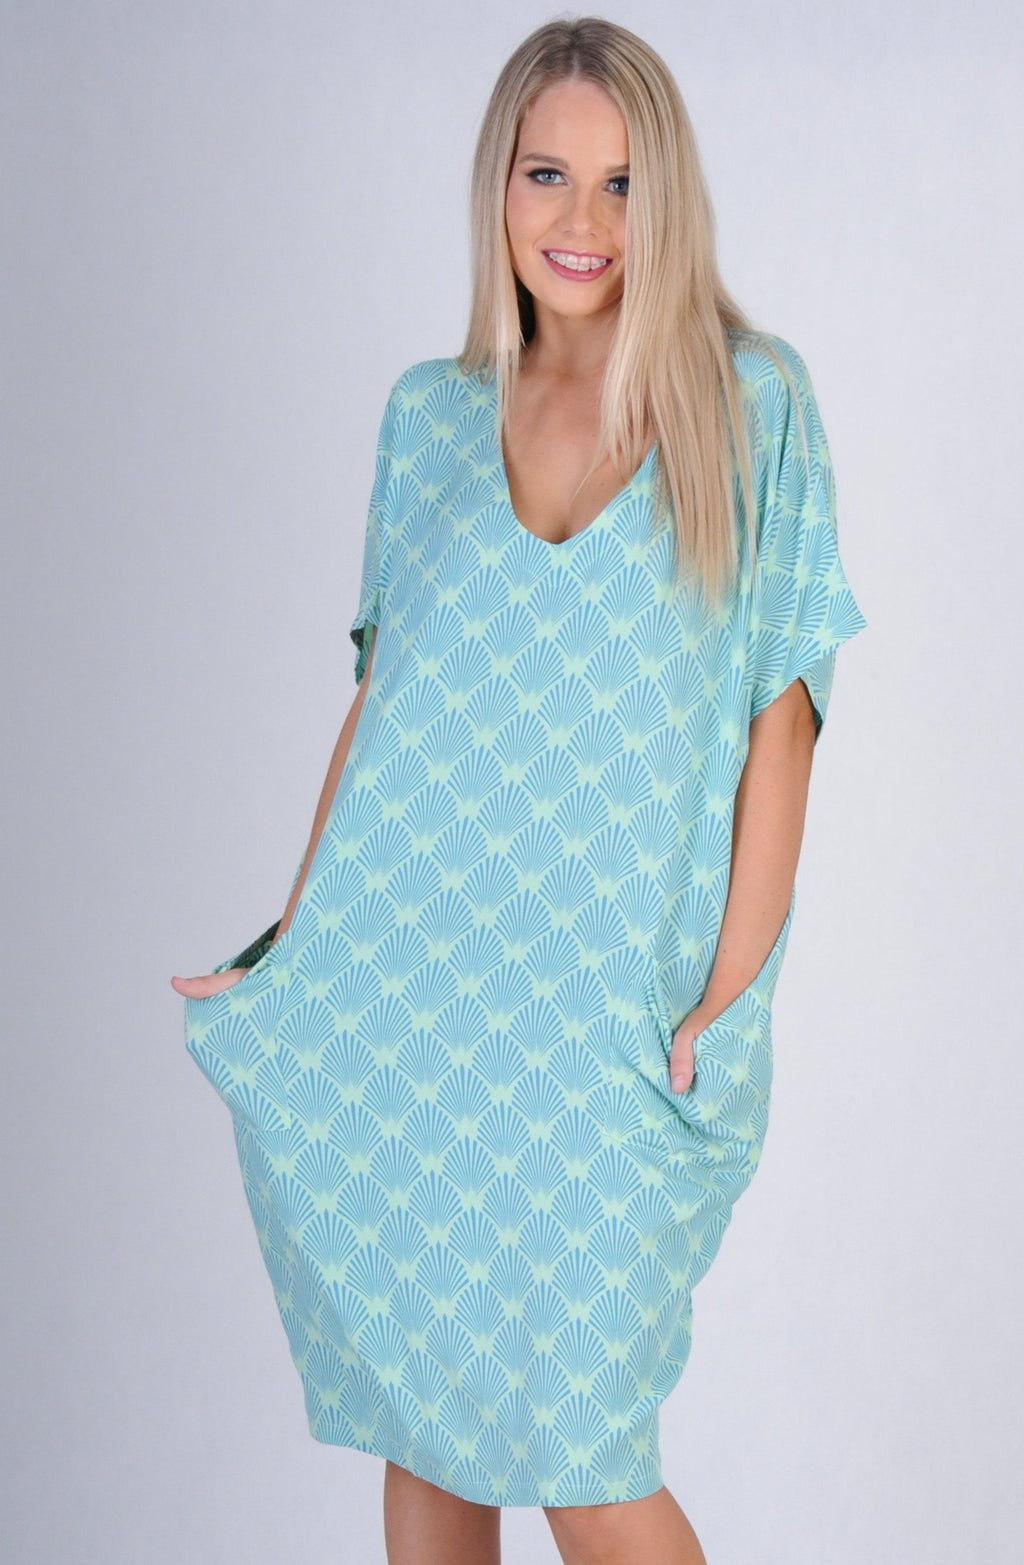 VBLD116 - SAND BAR DRESS - FAN PRINT BLUE